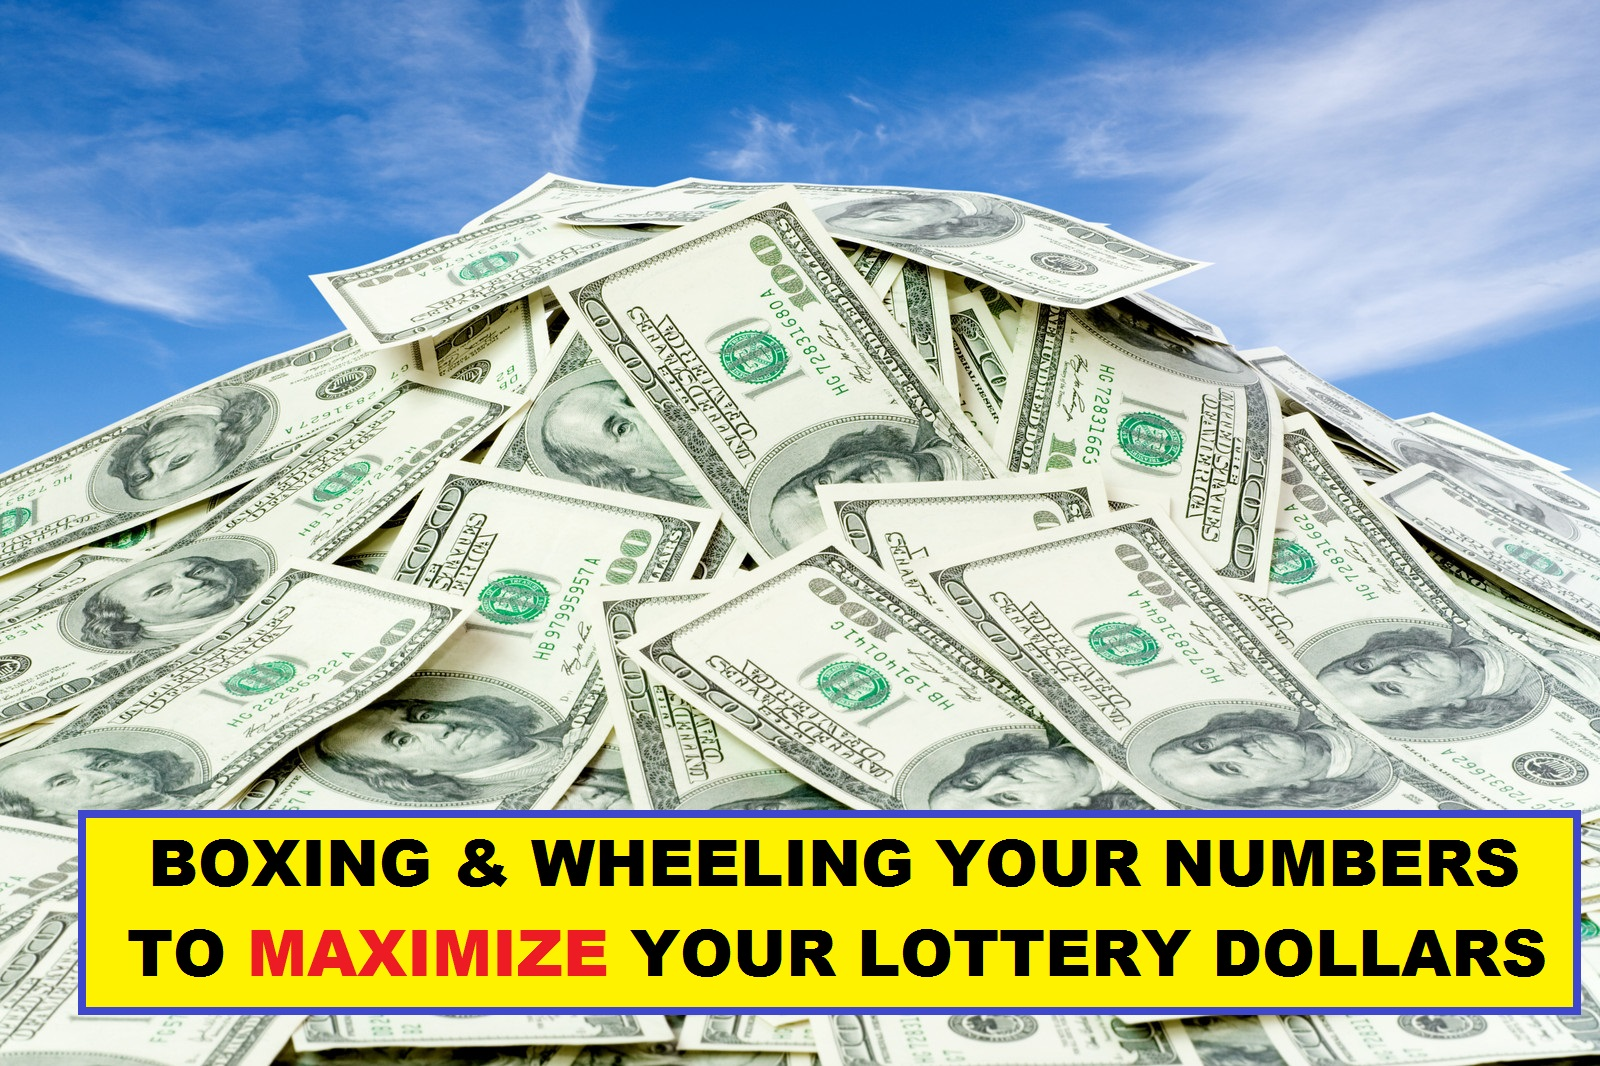 Boxing and Wheeling your numbers to maximize your lottery dollars- Visually impaired users please see our Accessibility Statement on the Terms Of Use page